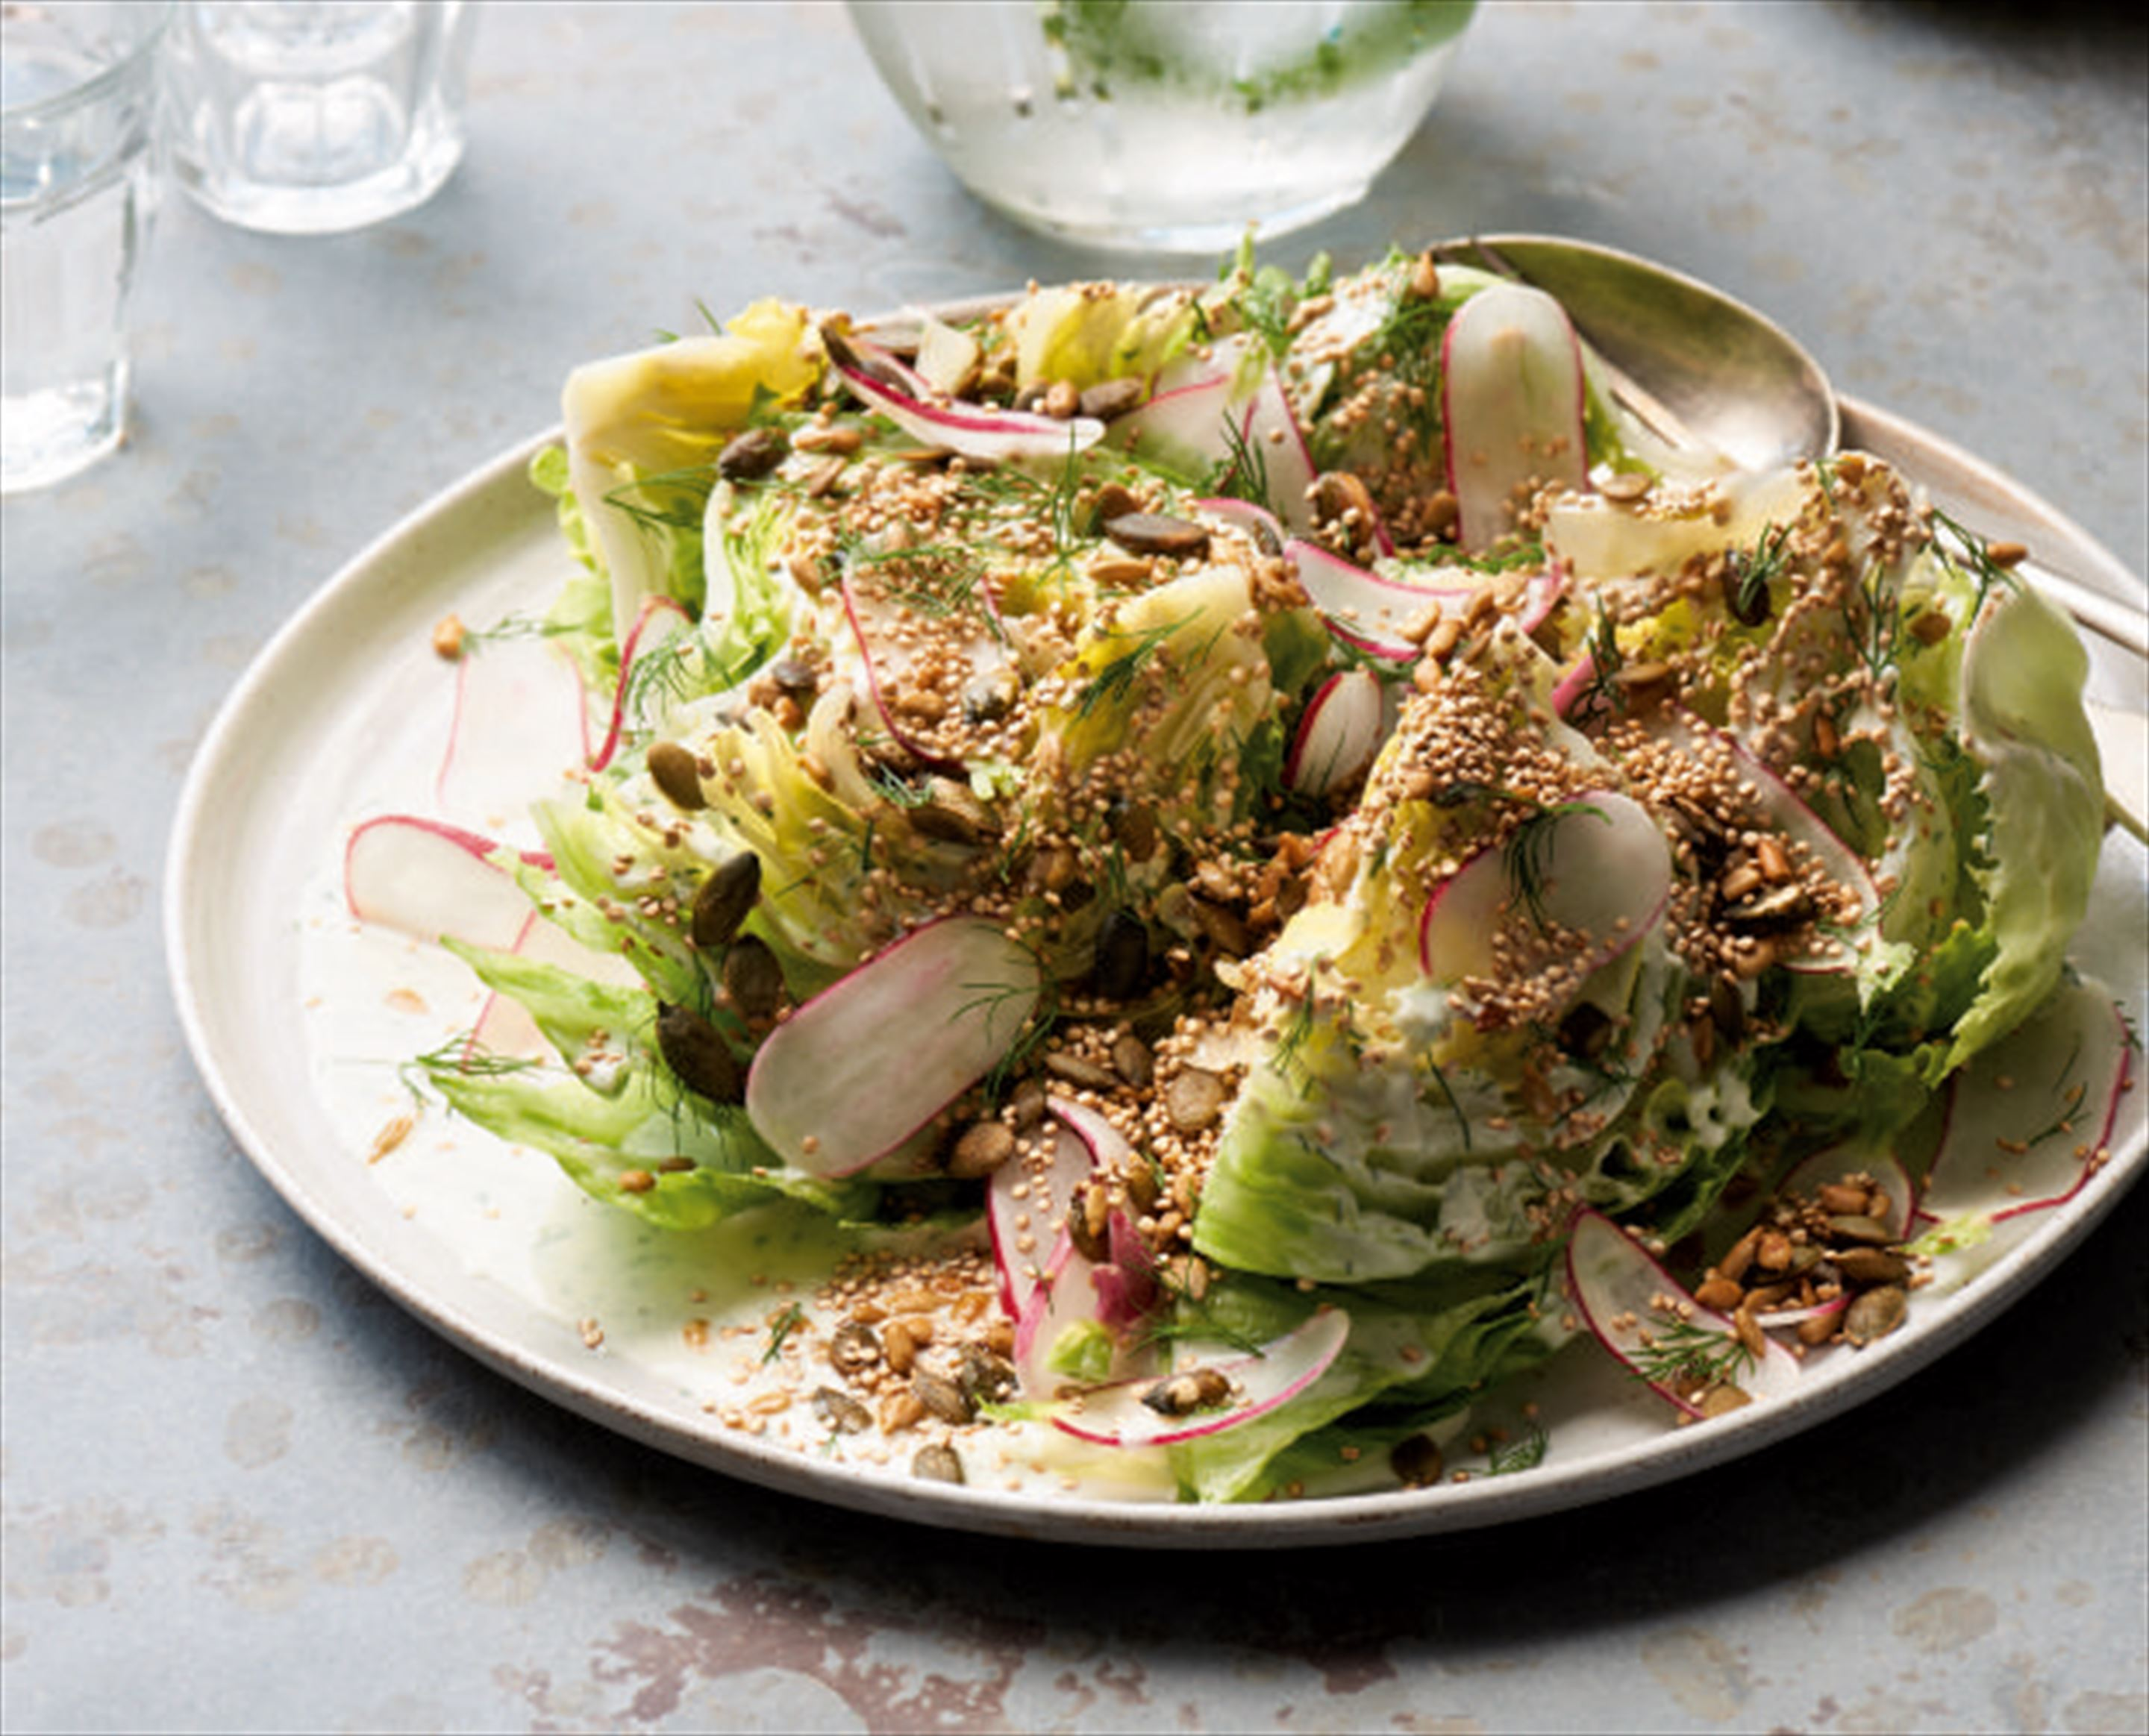 Buttermilk, dill and soy-seed wedge salad